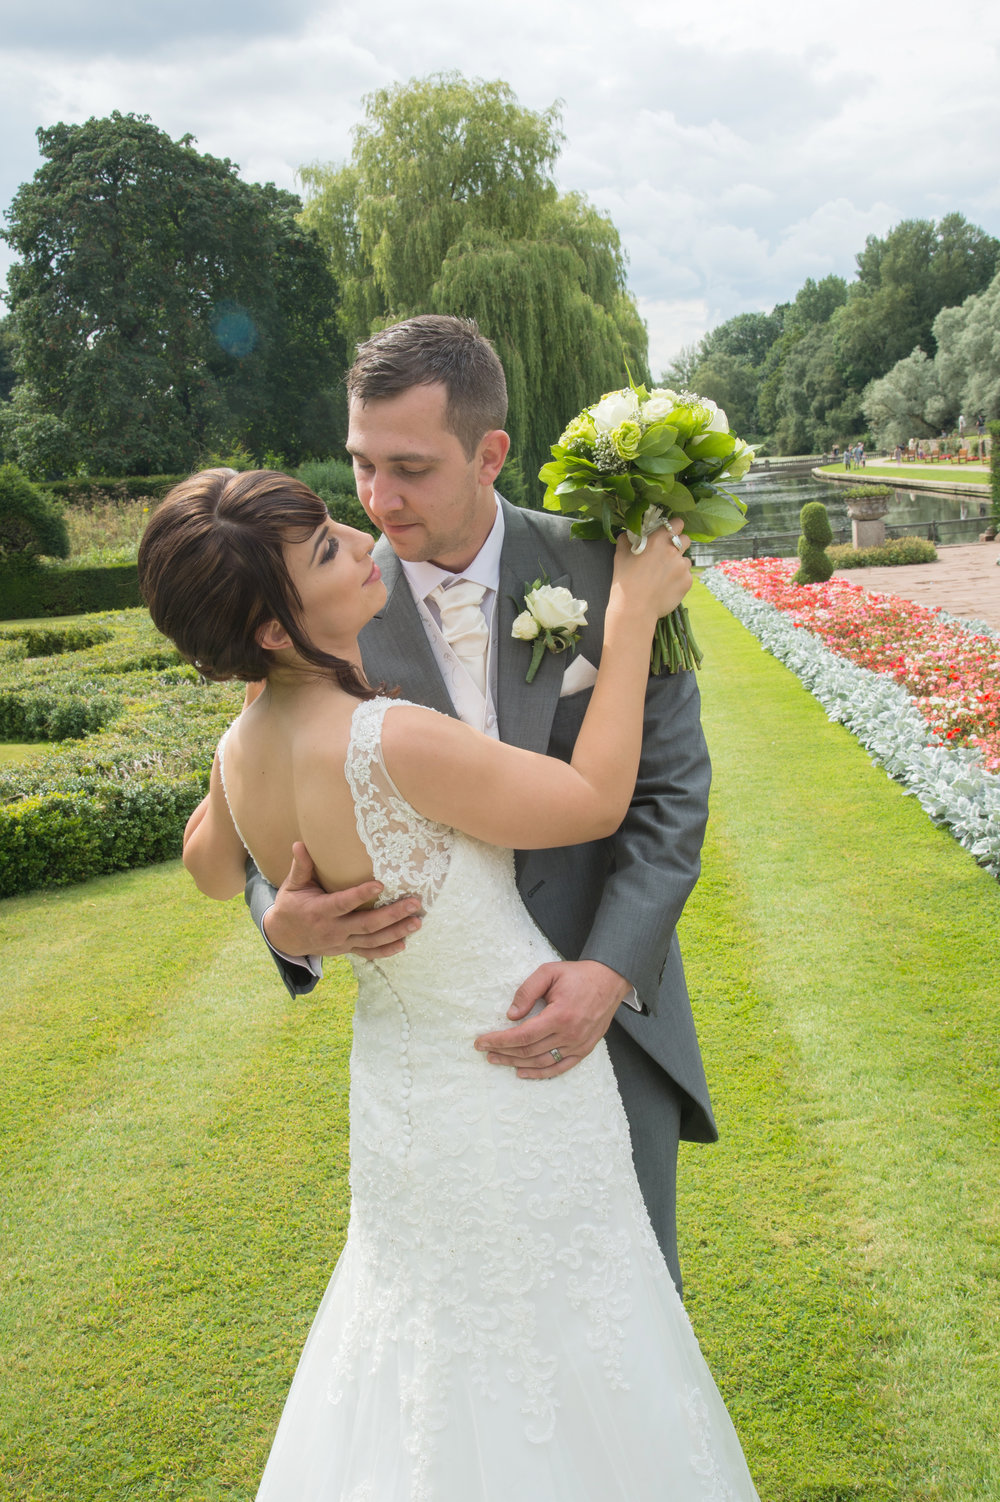 Bride and Groom kiss on the Lawn at Coombe Abbey Coventry